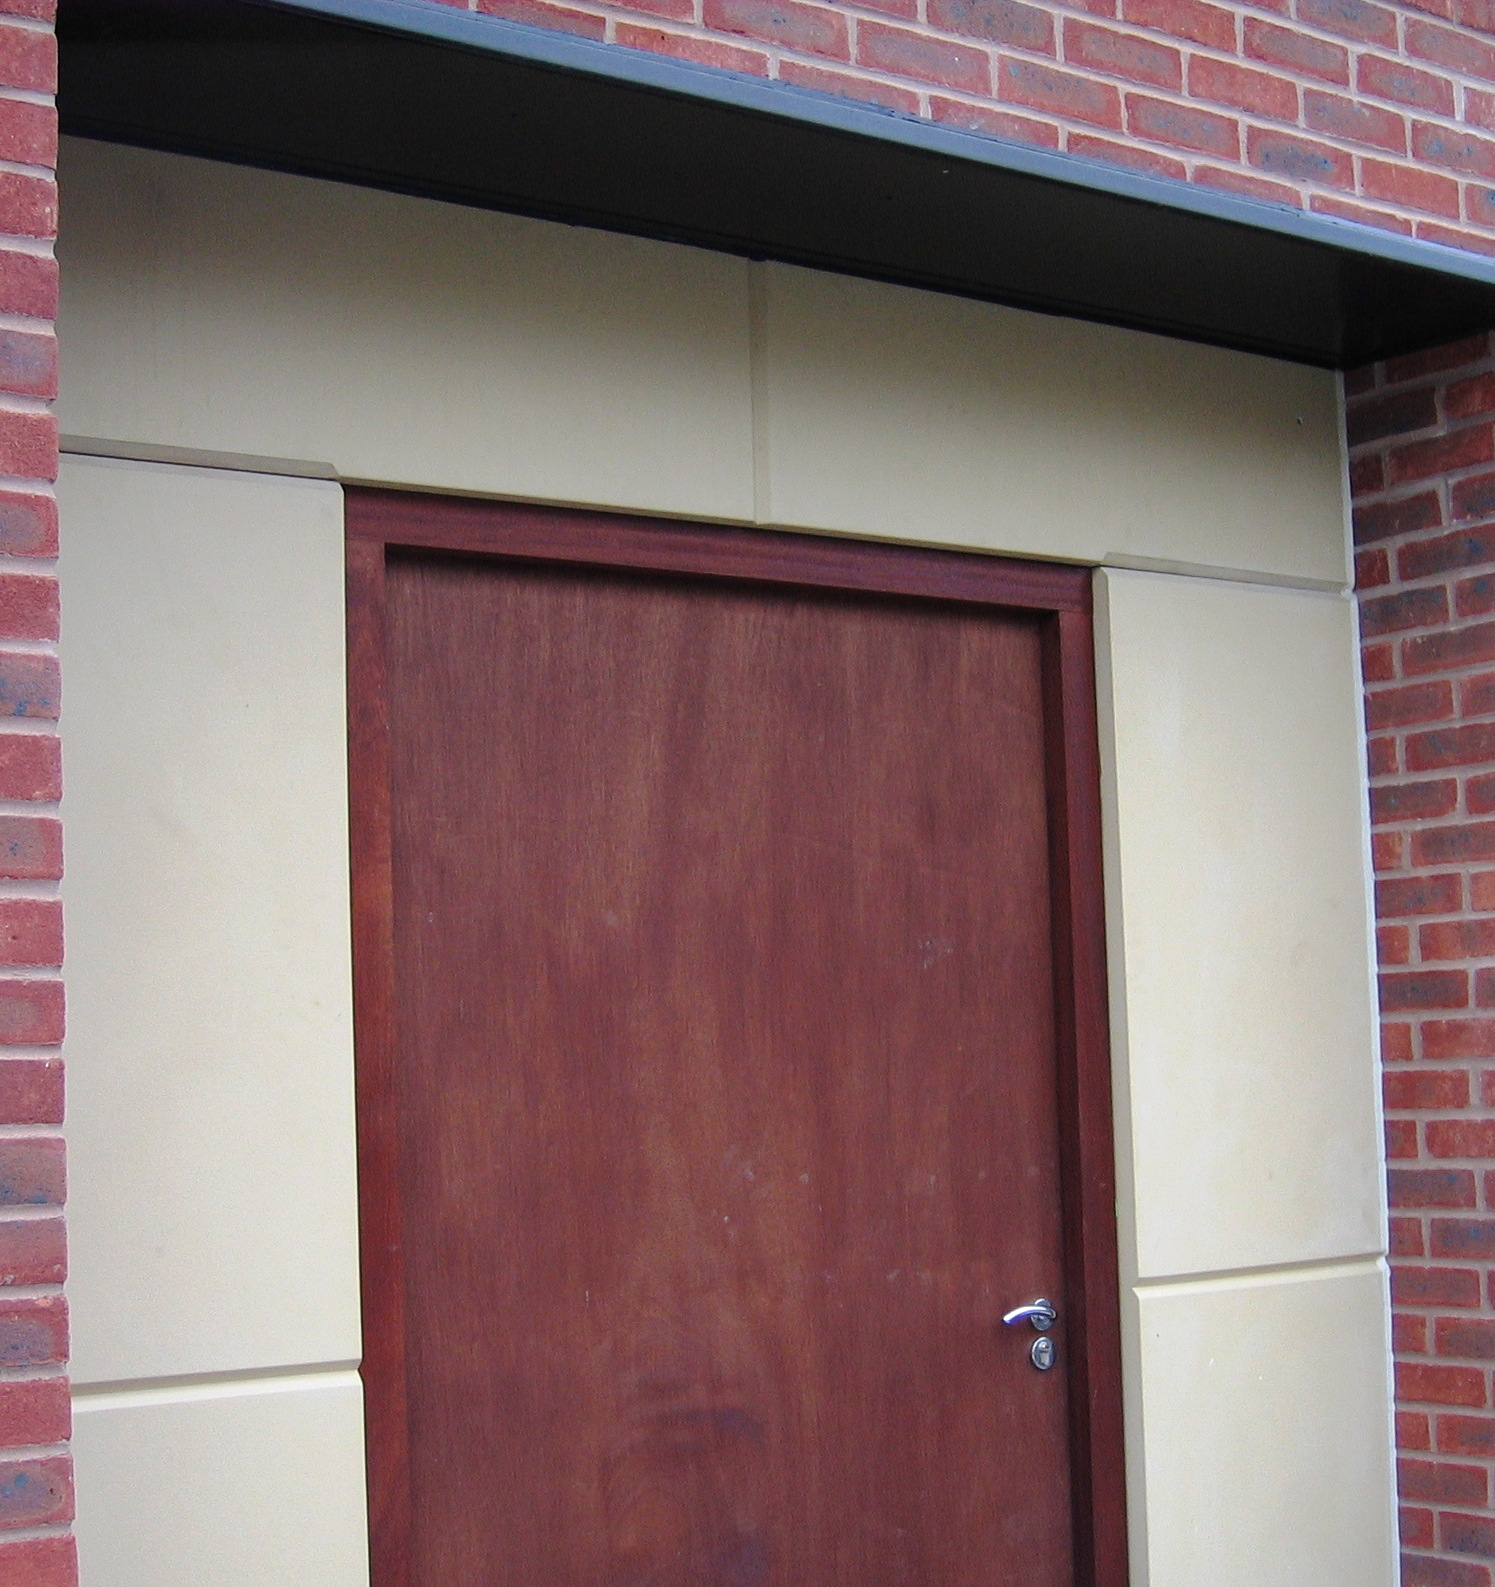 Stone Effect Door Surround with Minster Joints